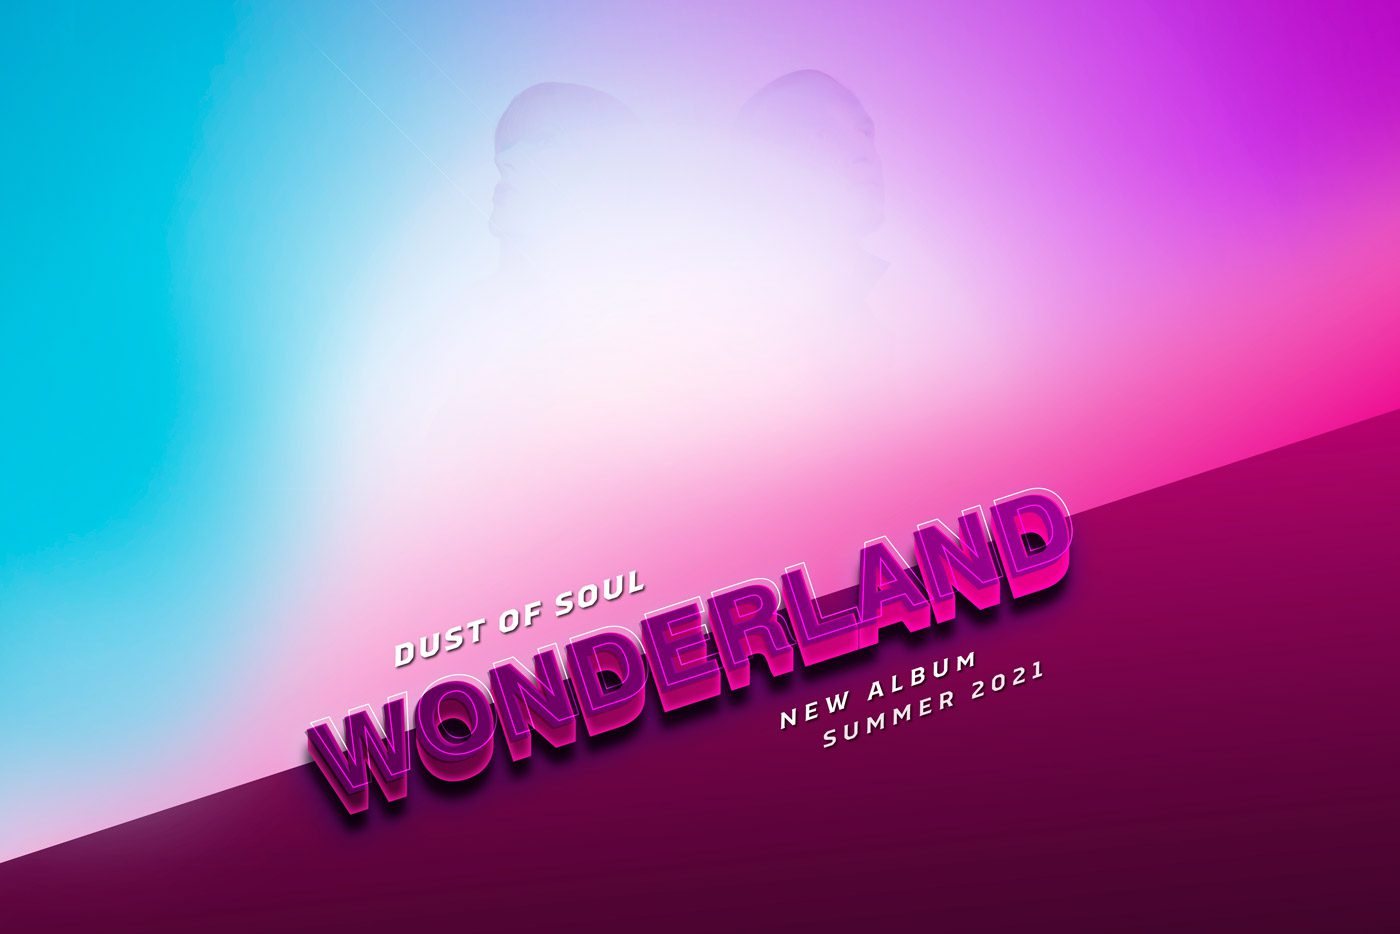 New Album «Wonderland» coming This Summer 2021